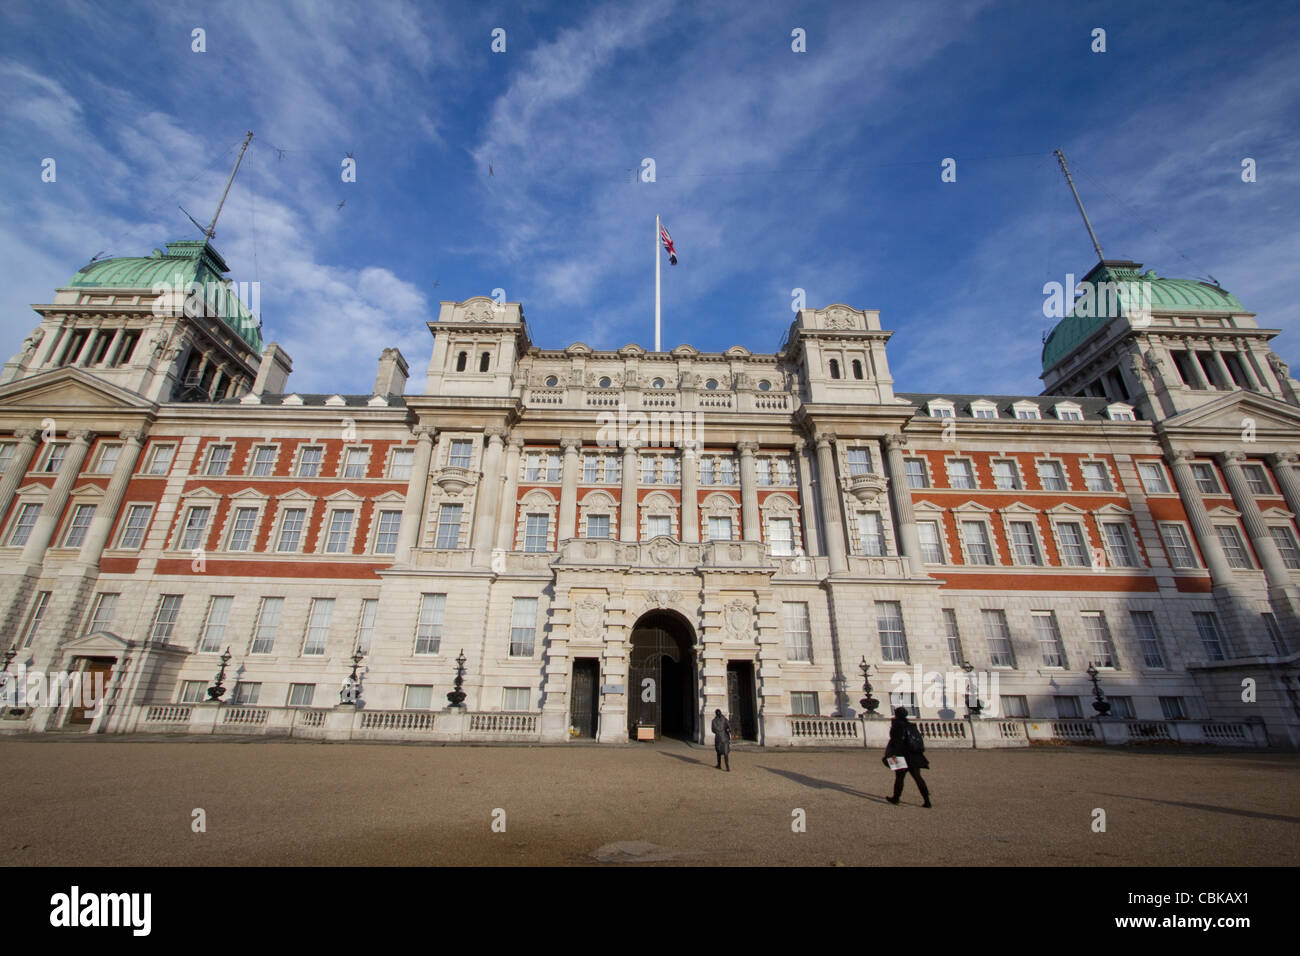 foreign and commonwealth office old admiralty building - Stock Image